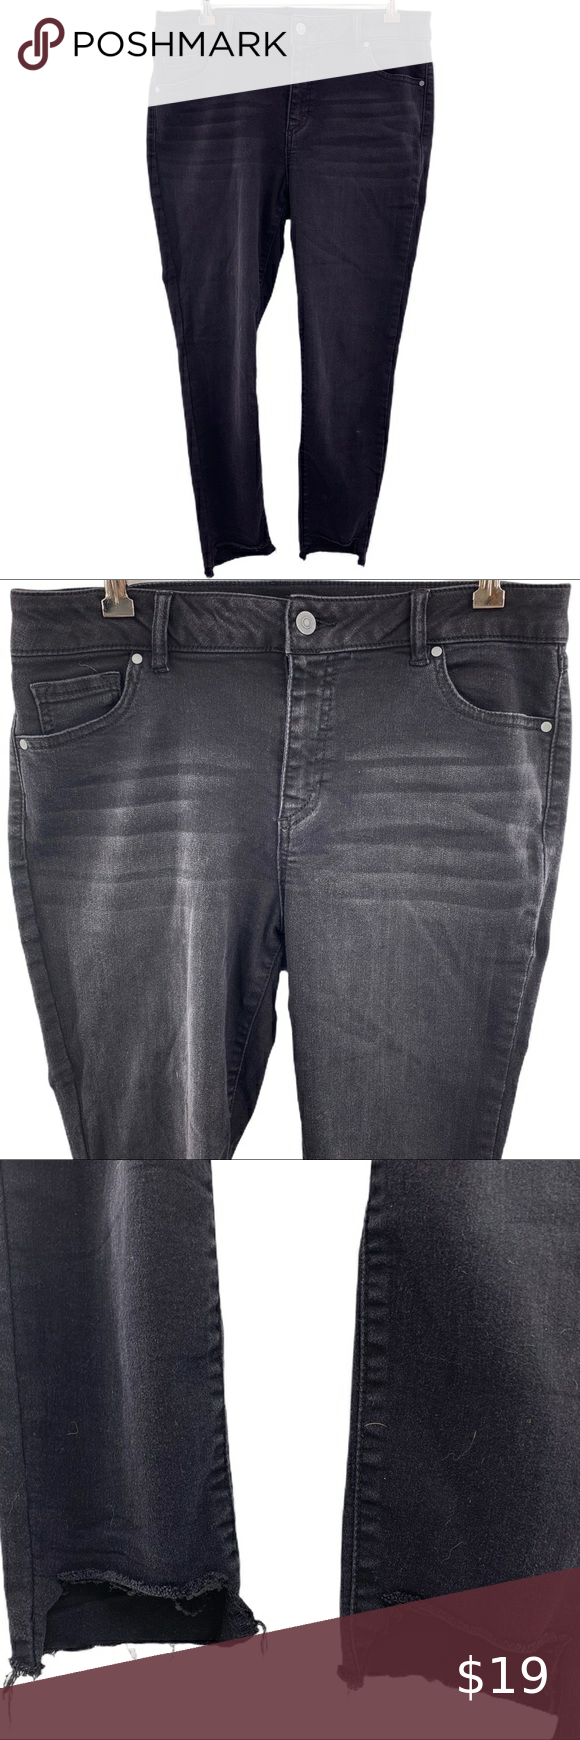 Miss Poured In Blue Black Skinny Jeans Size 12 Skinny With Stretch Whisker Fading At The Top And Distre In 2020 Black Skinny Jeans Skinny Jeans Size 12 Black Skinnies